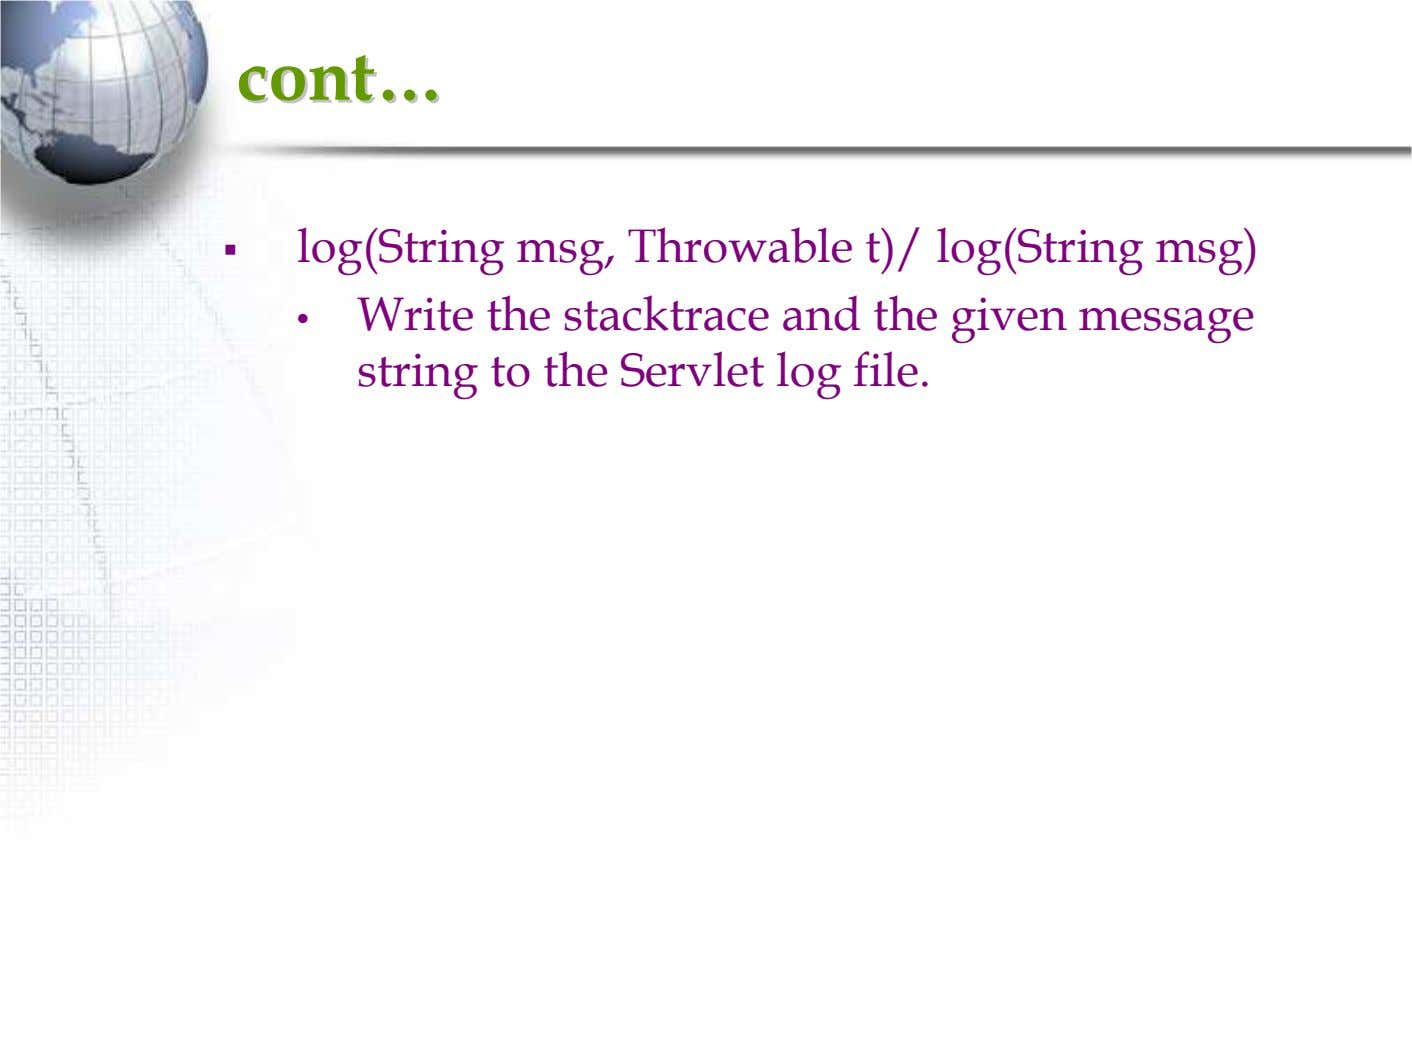 contcont…… log(String msg, Throwable t)/ log(String msg) • Write the stacktrace and the given message